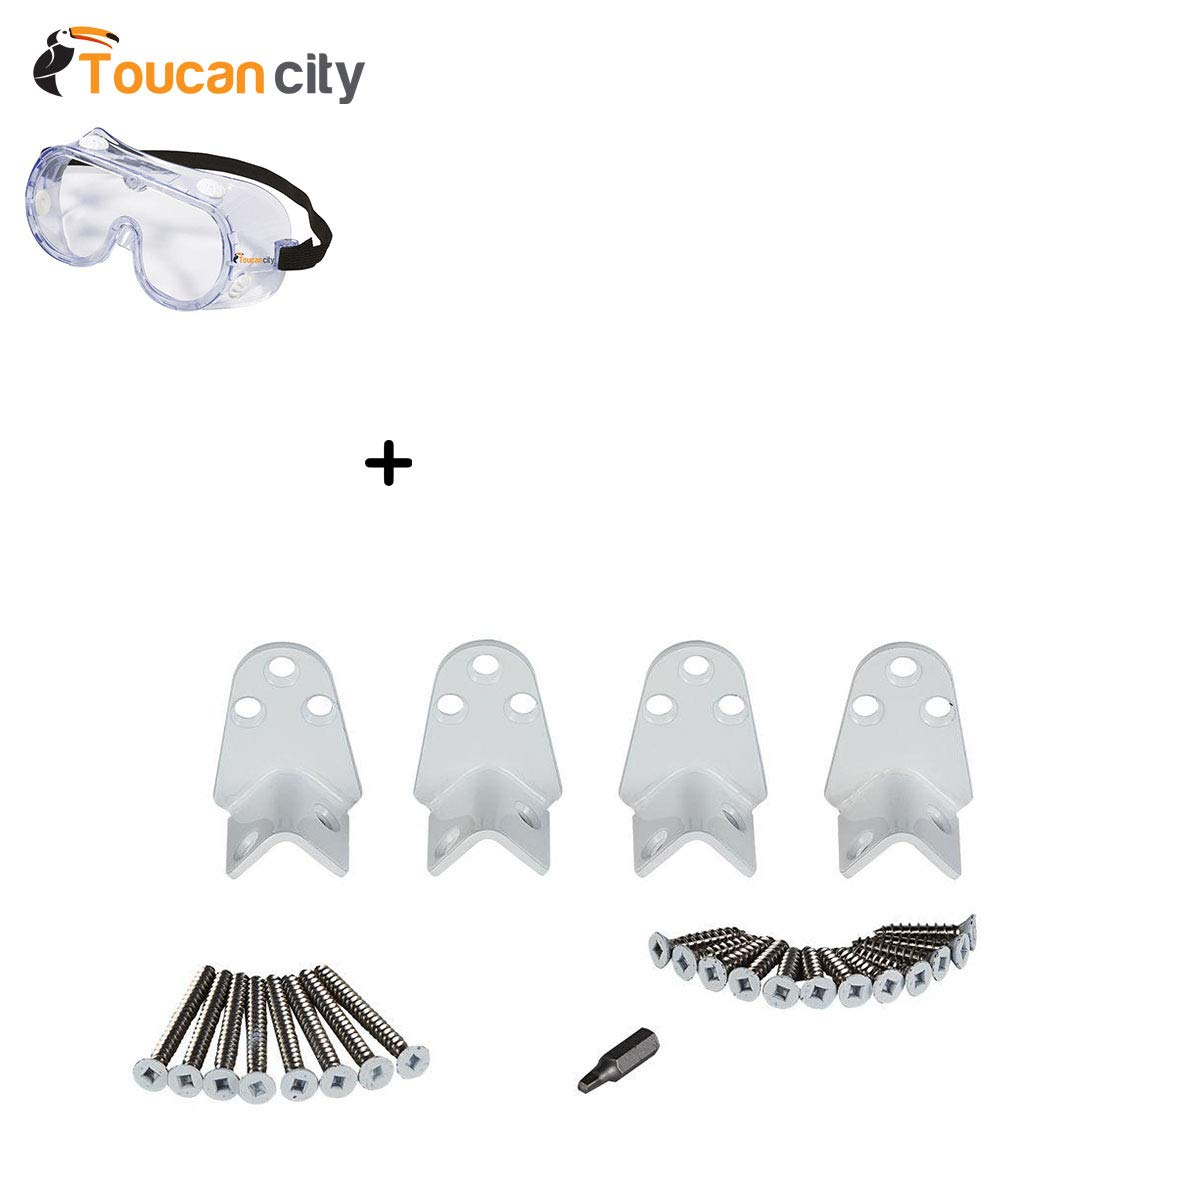 Toucan City Safety Goggles Fiberon Horizon White Stainless Steel Angle Rail Hardware Kit BKT Angle 4PK W C